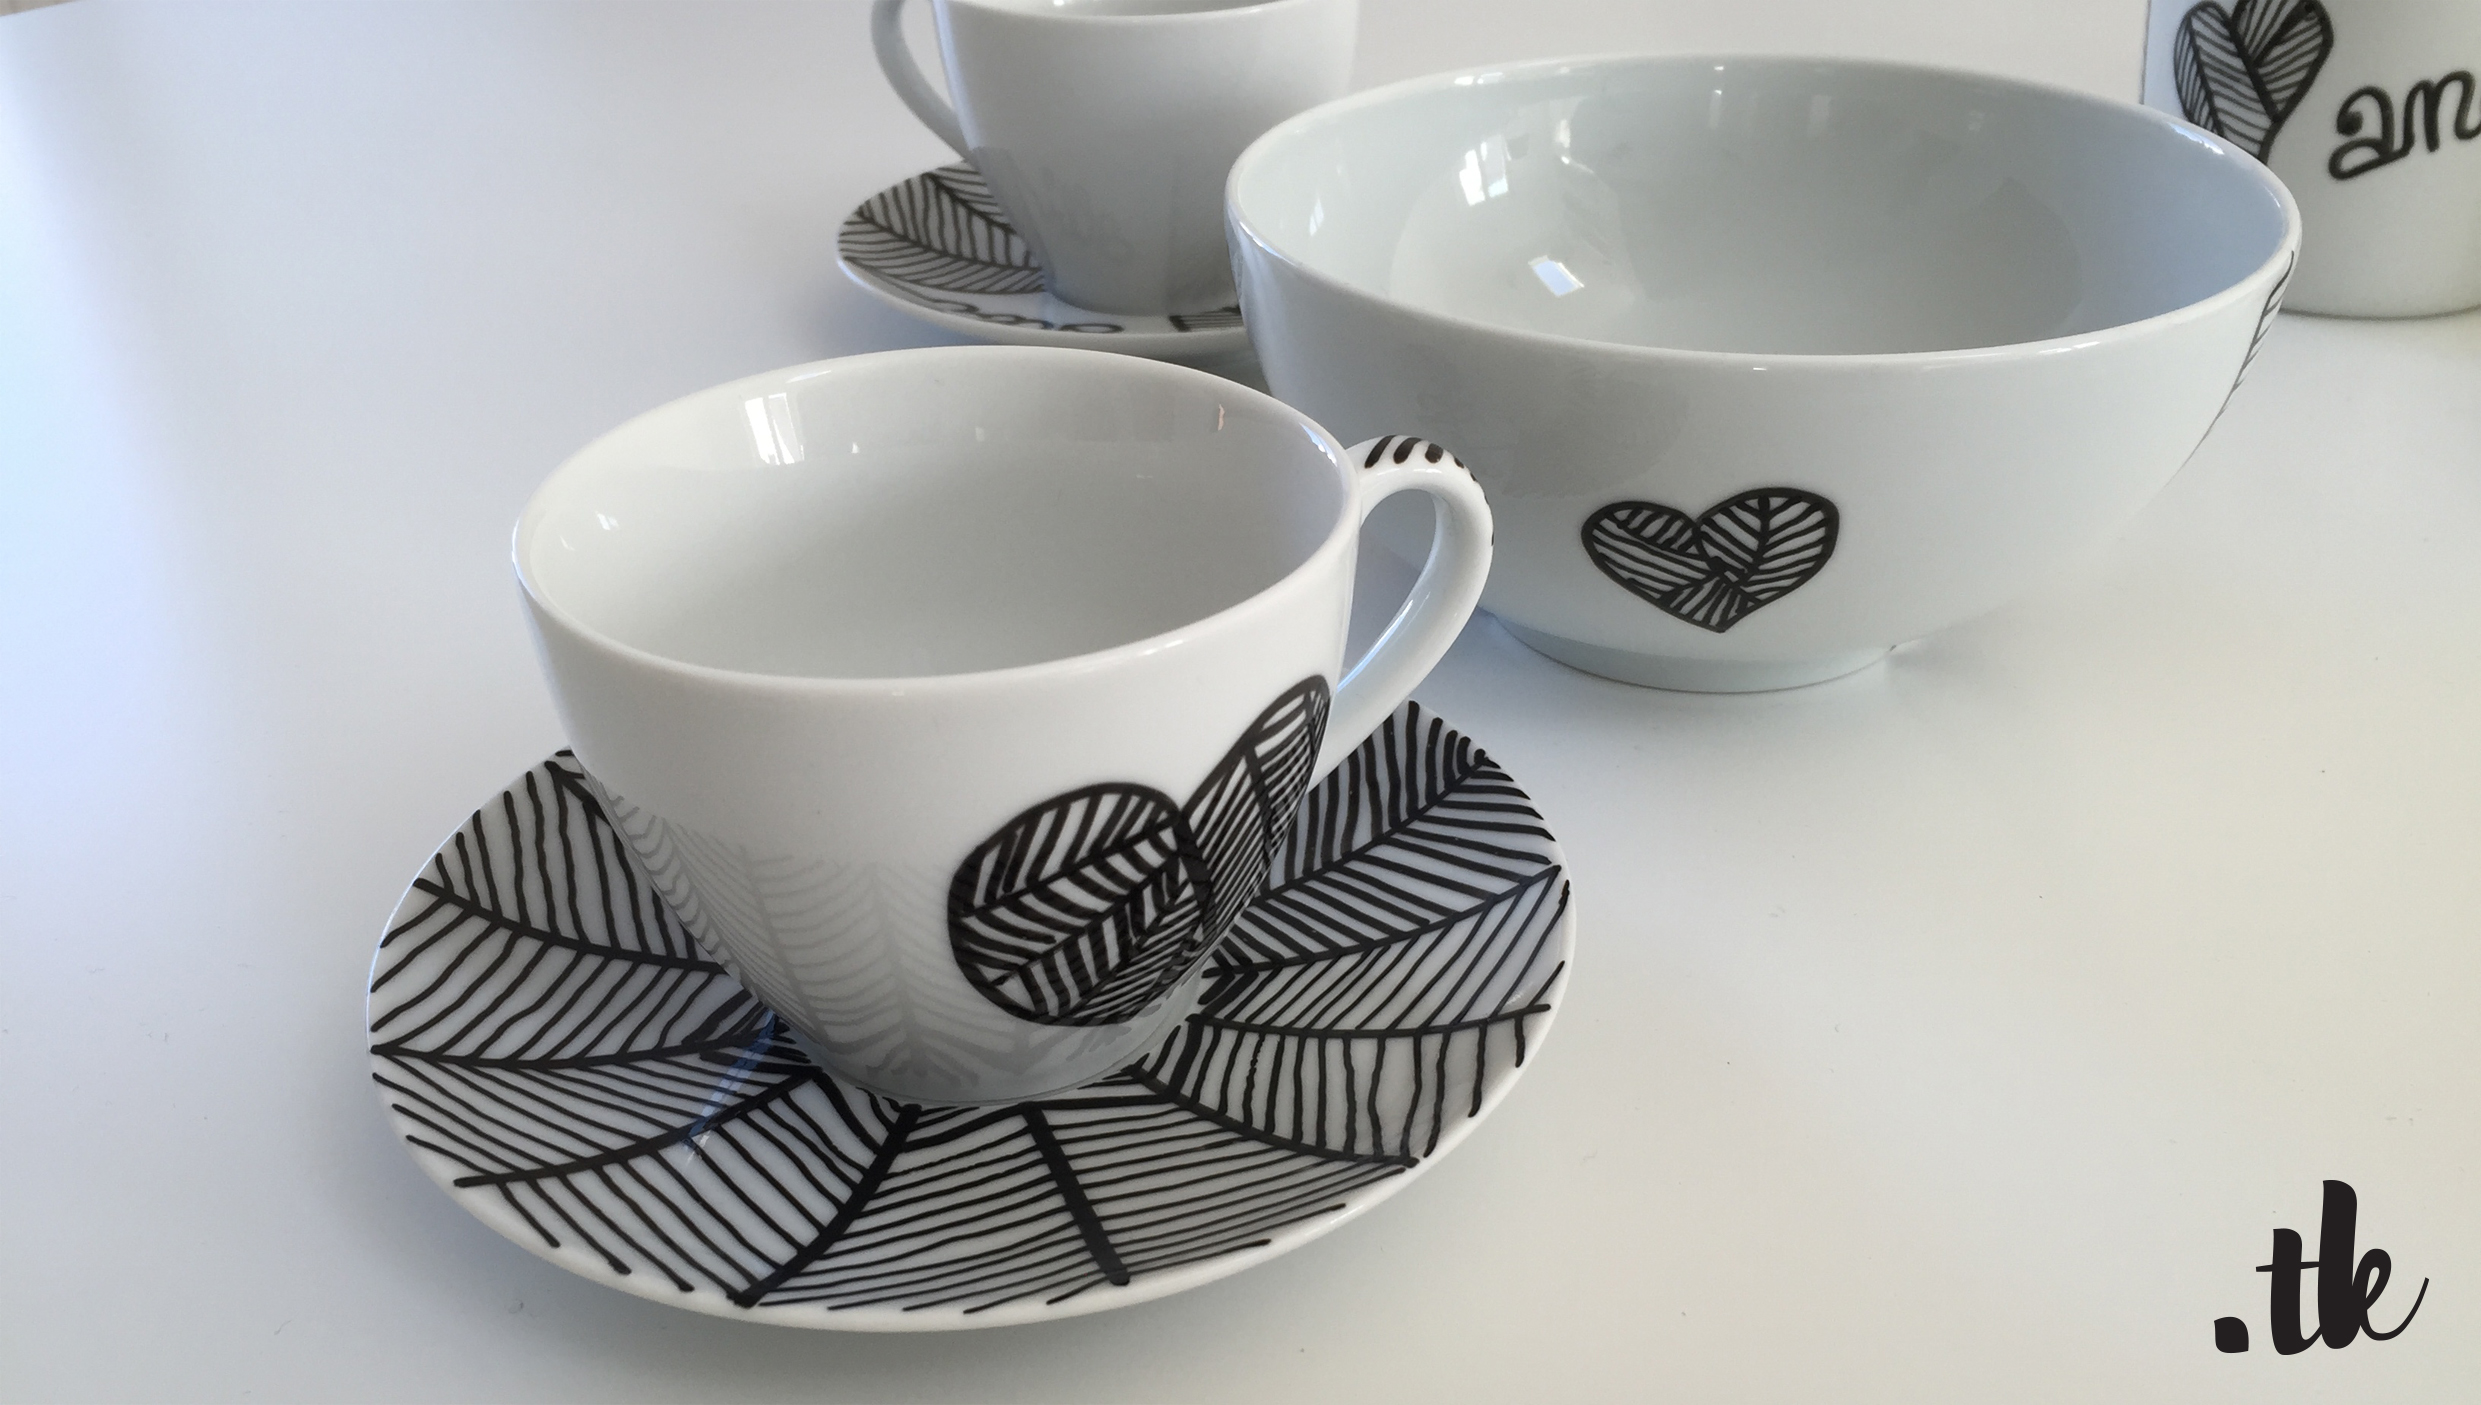 Tanja Kaiser Porcelaine Art Design Mugs in Black and White Patterns